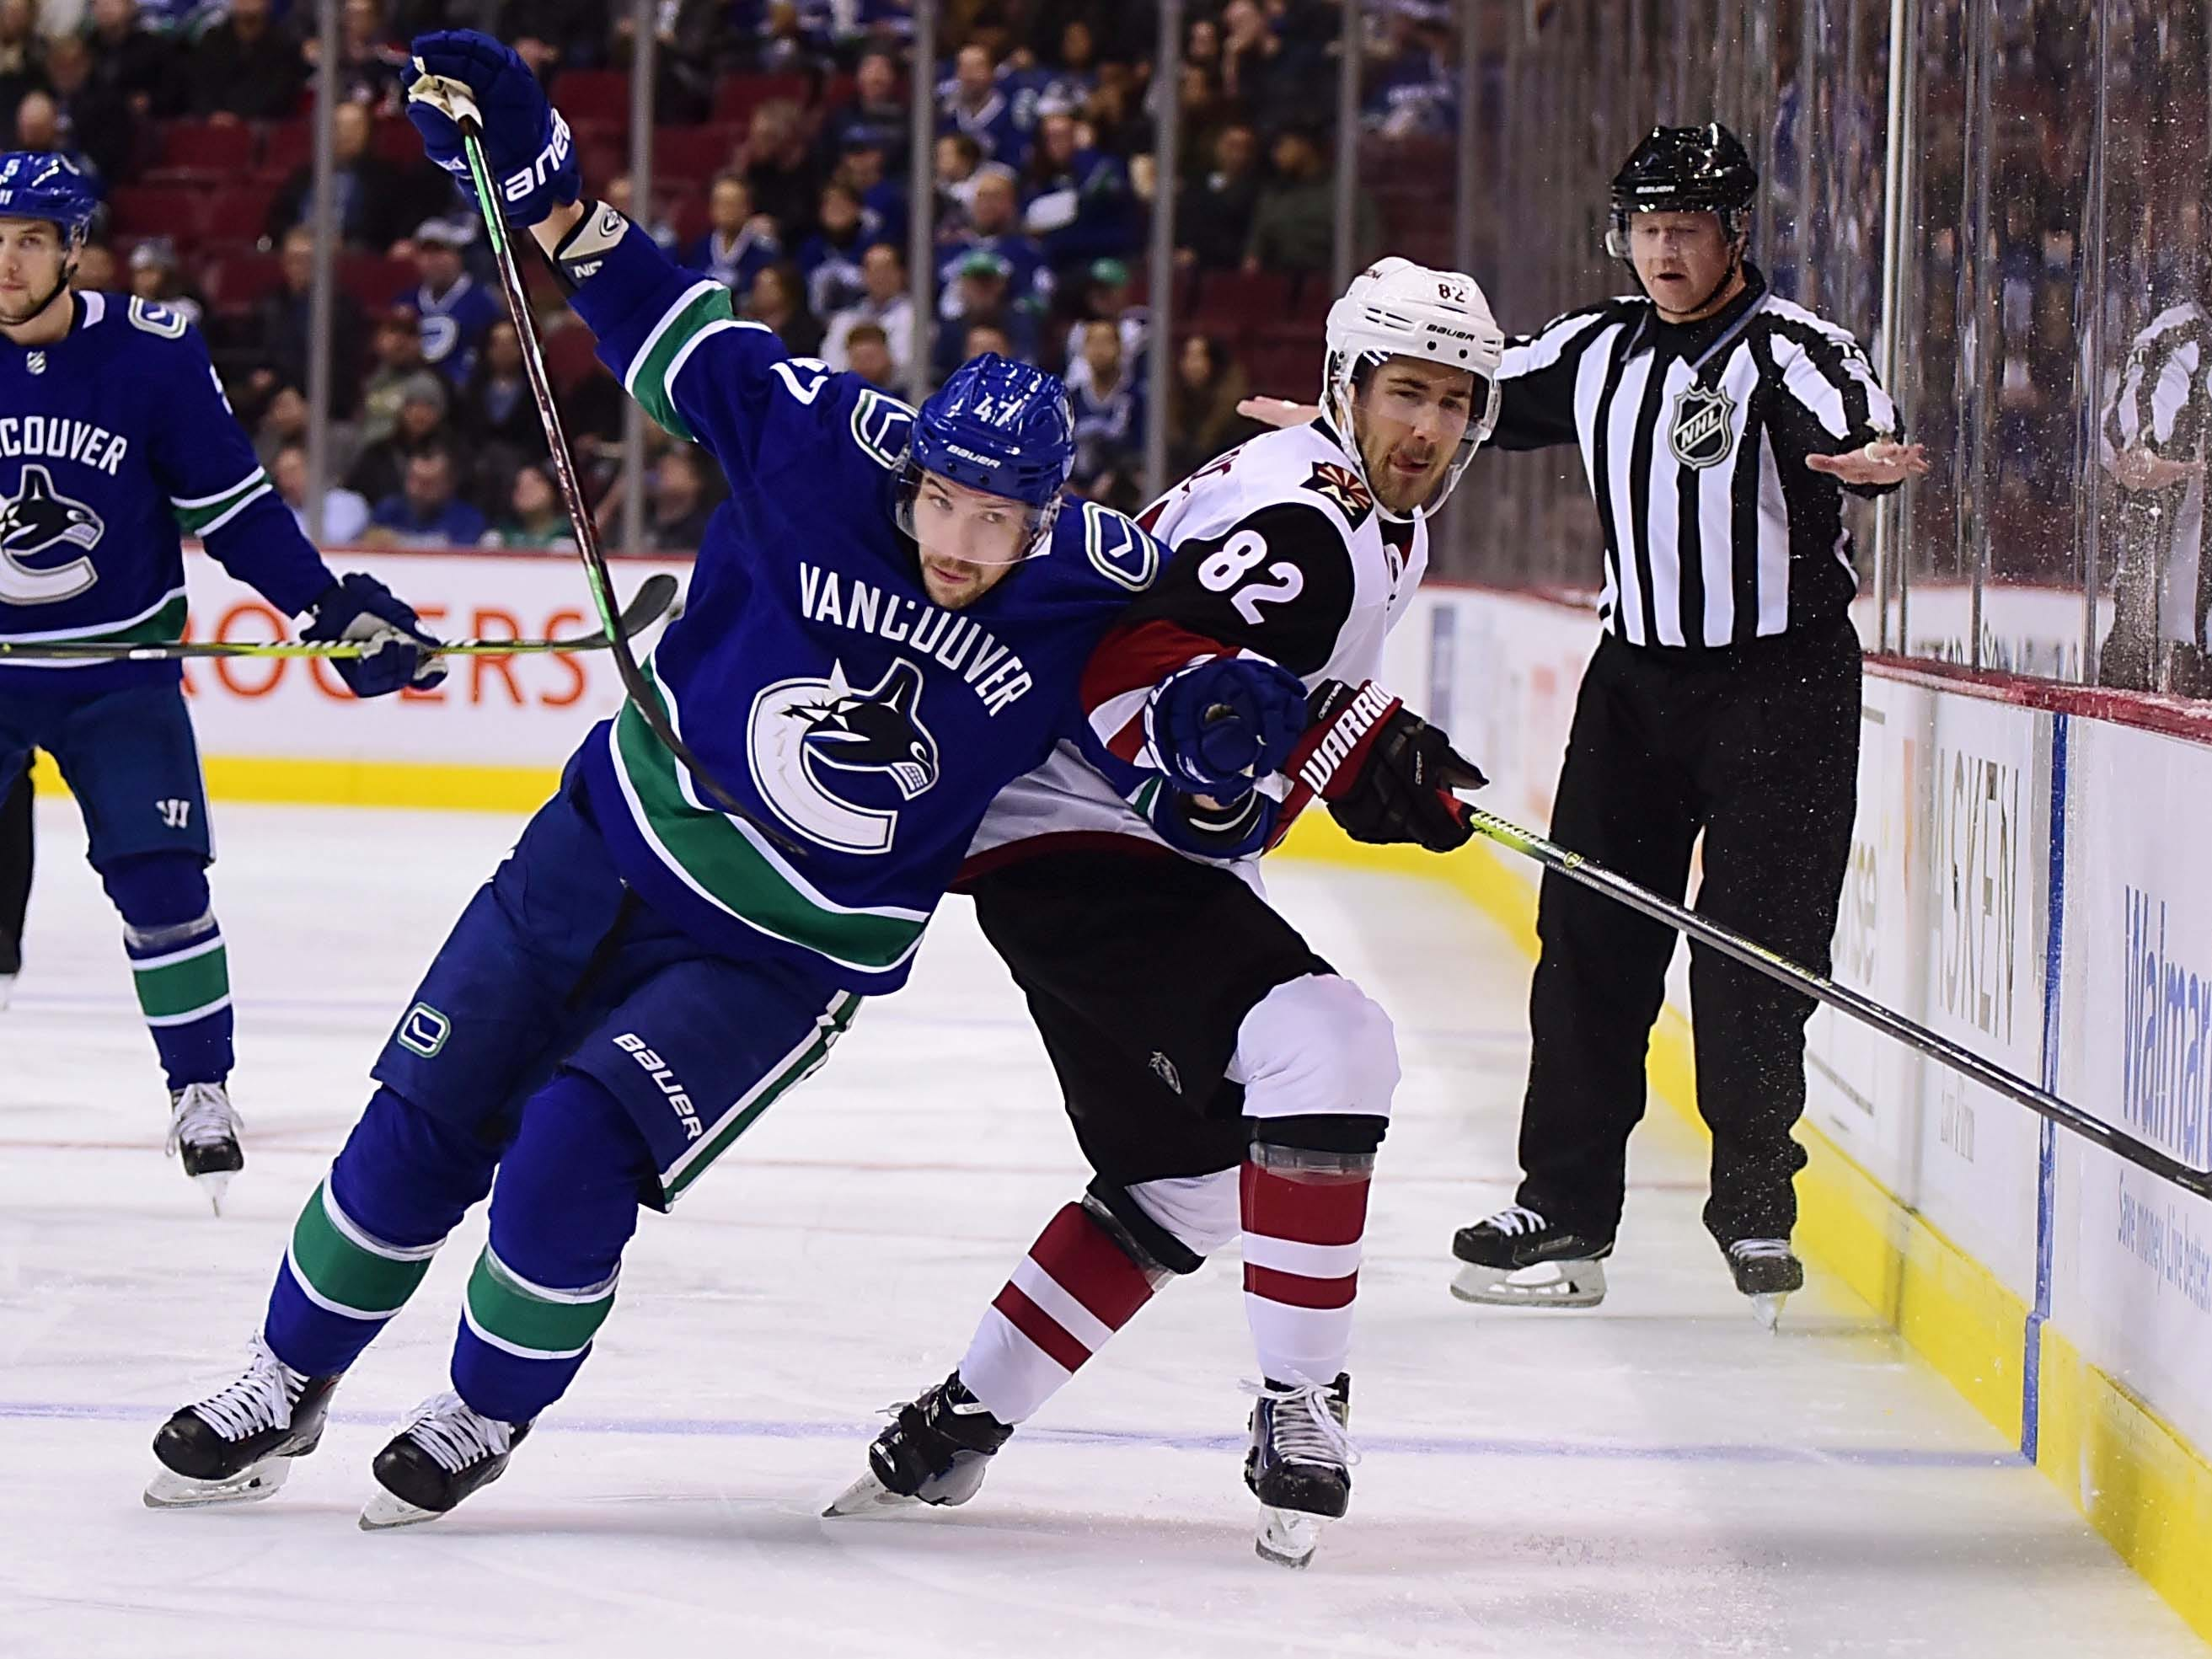 Jan 10, 2019; Vancouver, British Columbia, CAN; Vancouver Canucks forward Sven Baertschi (47) battles for the puck against Arizona Coyotes defenseman Jordan Oesterie (82)  during the first period at Rogers Arena. Mandatory Credit: Anne-Marie Sorvin-USA TODAY Sports